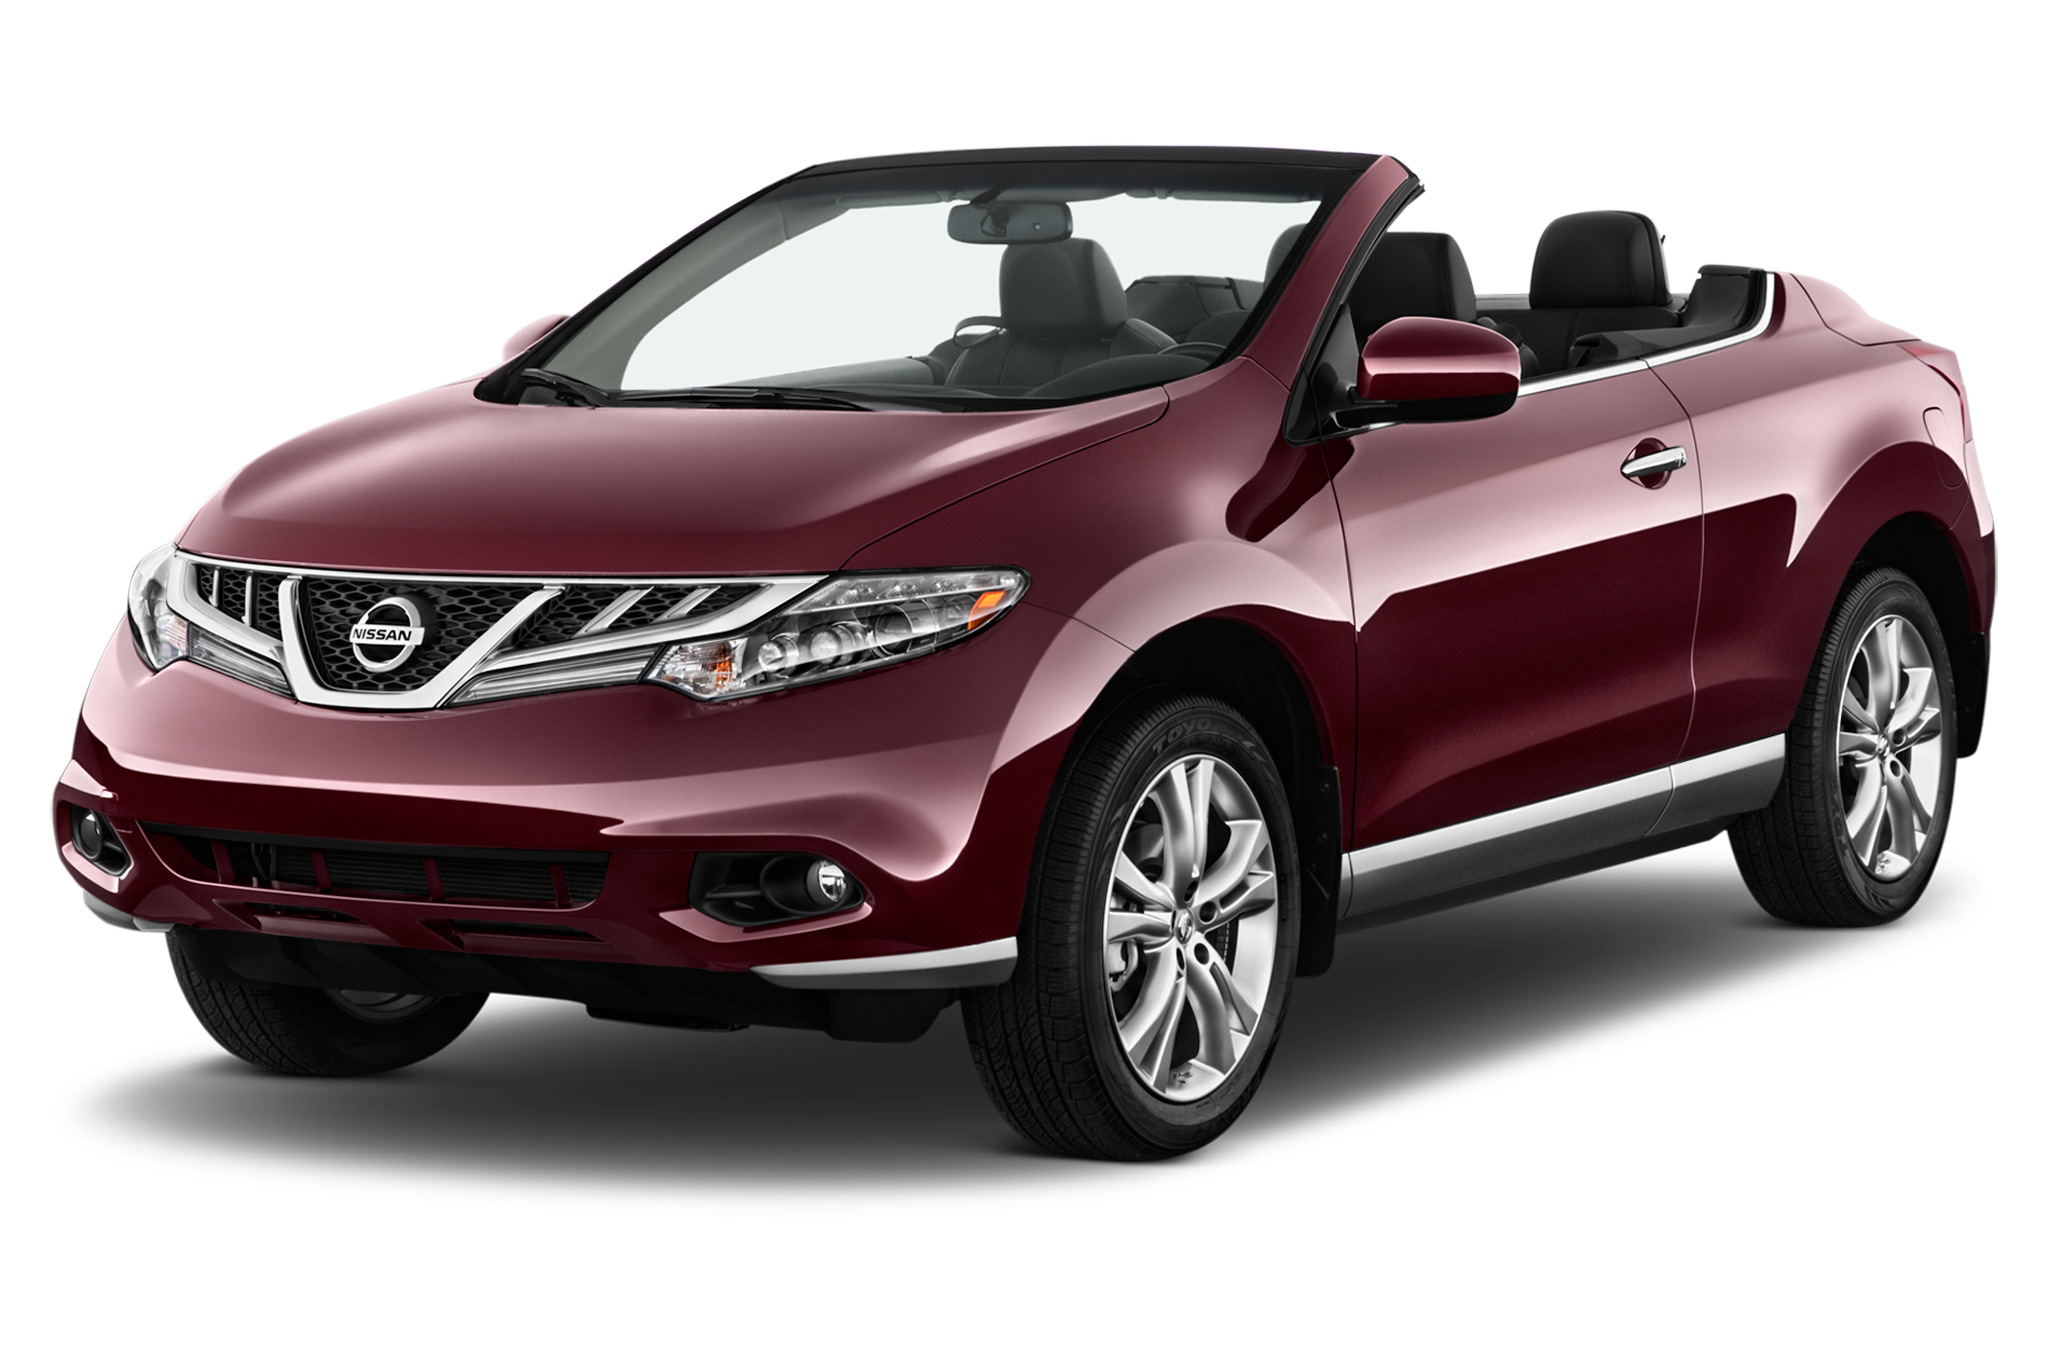 2012 nissan murano crosscabriolet reviews and rating   motortrend